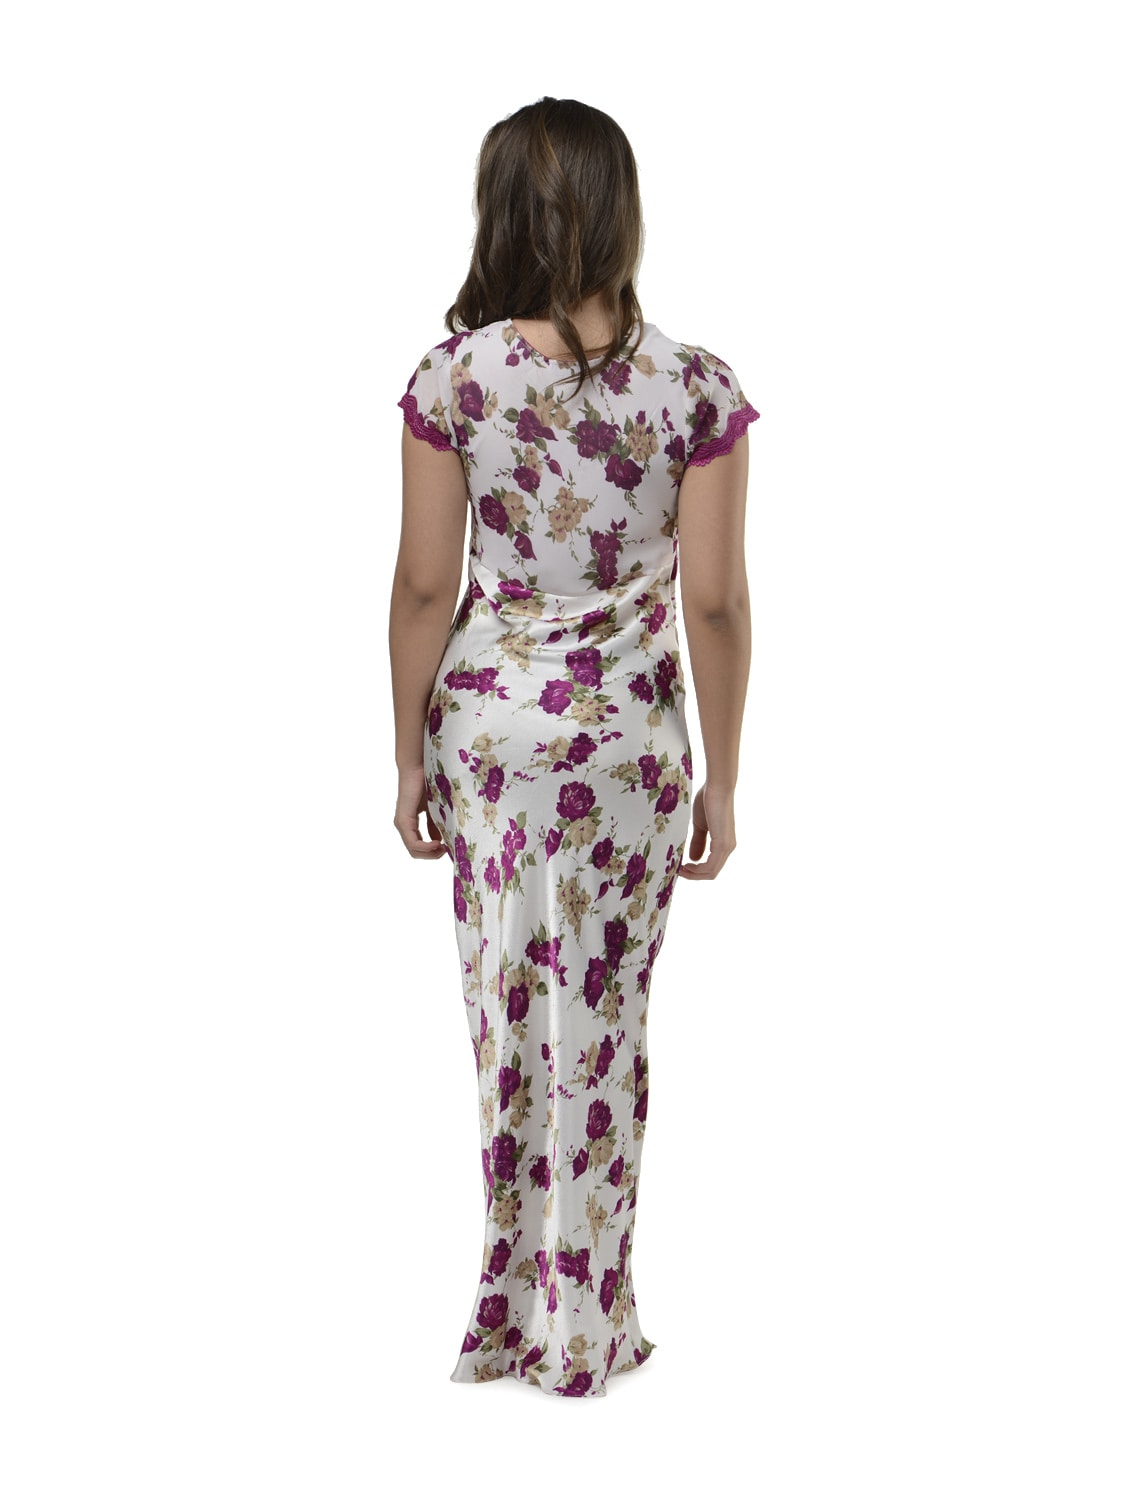 a40a6e7c972 Buy Stylish Long Nighty for Women from Privatelives for ₹999 at 0% off